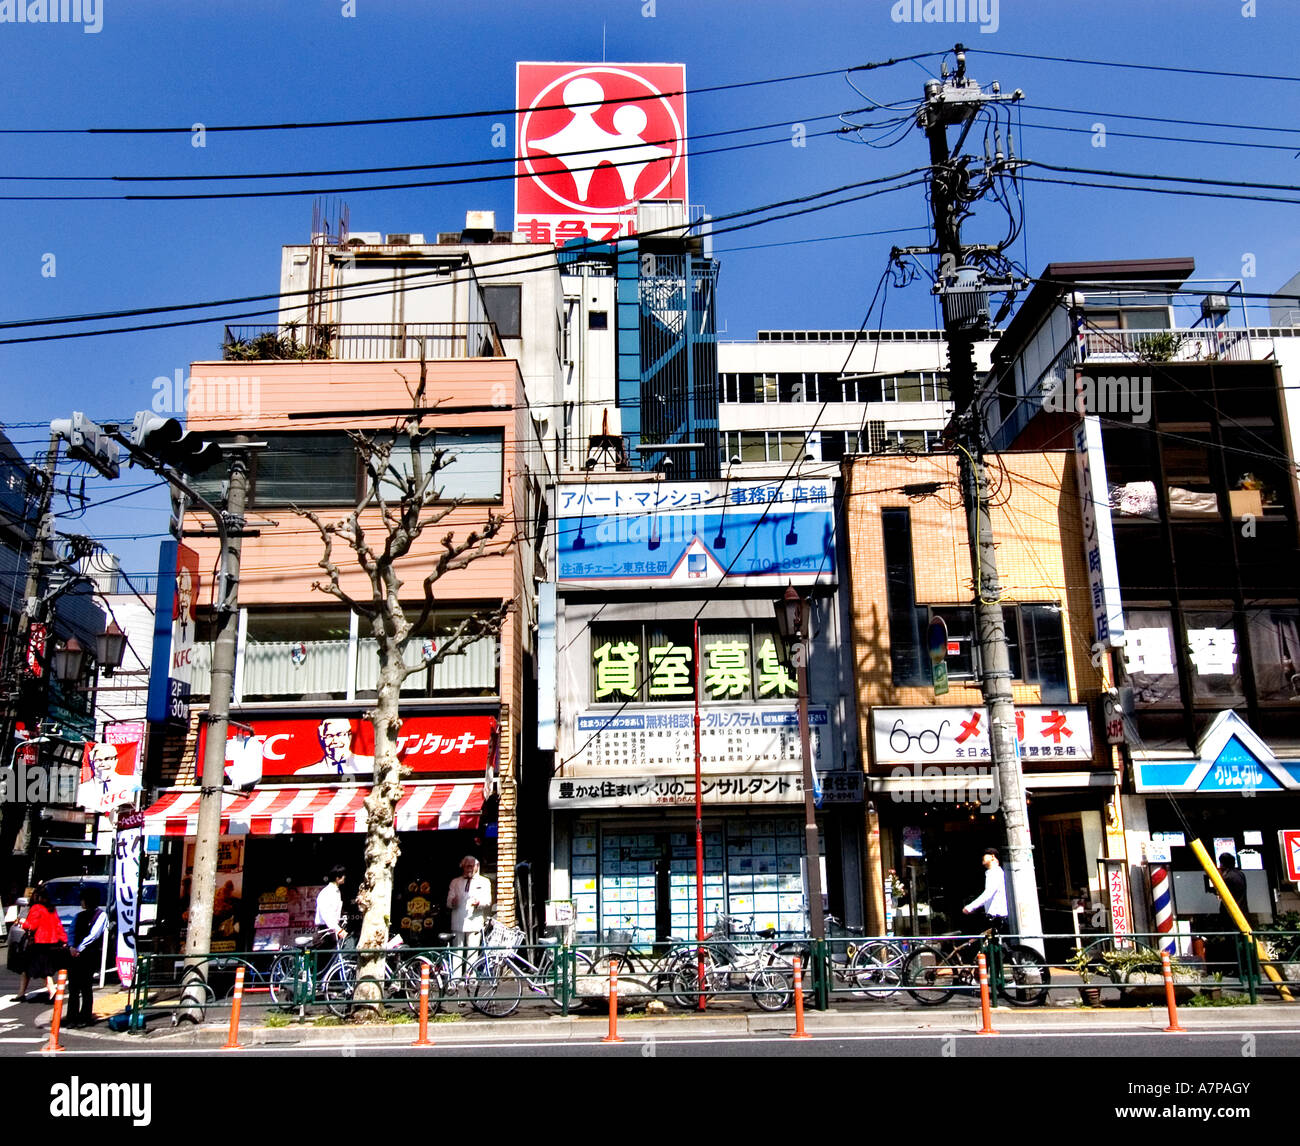 moderne architektur tokio japan stadt city centre stockfoto bild 11889002 alamy. Black Bedroom Furniture Sets. Home Design Ideas